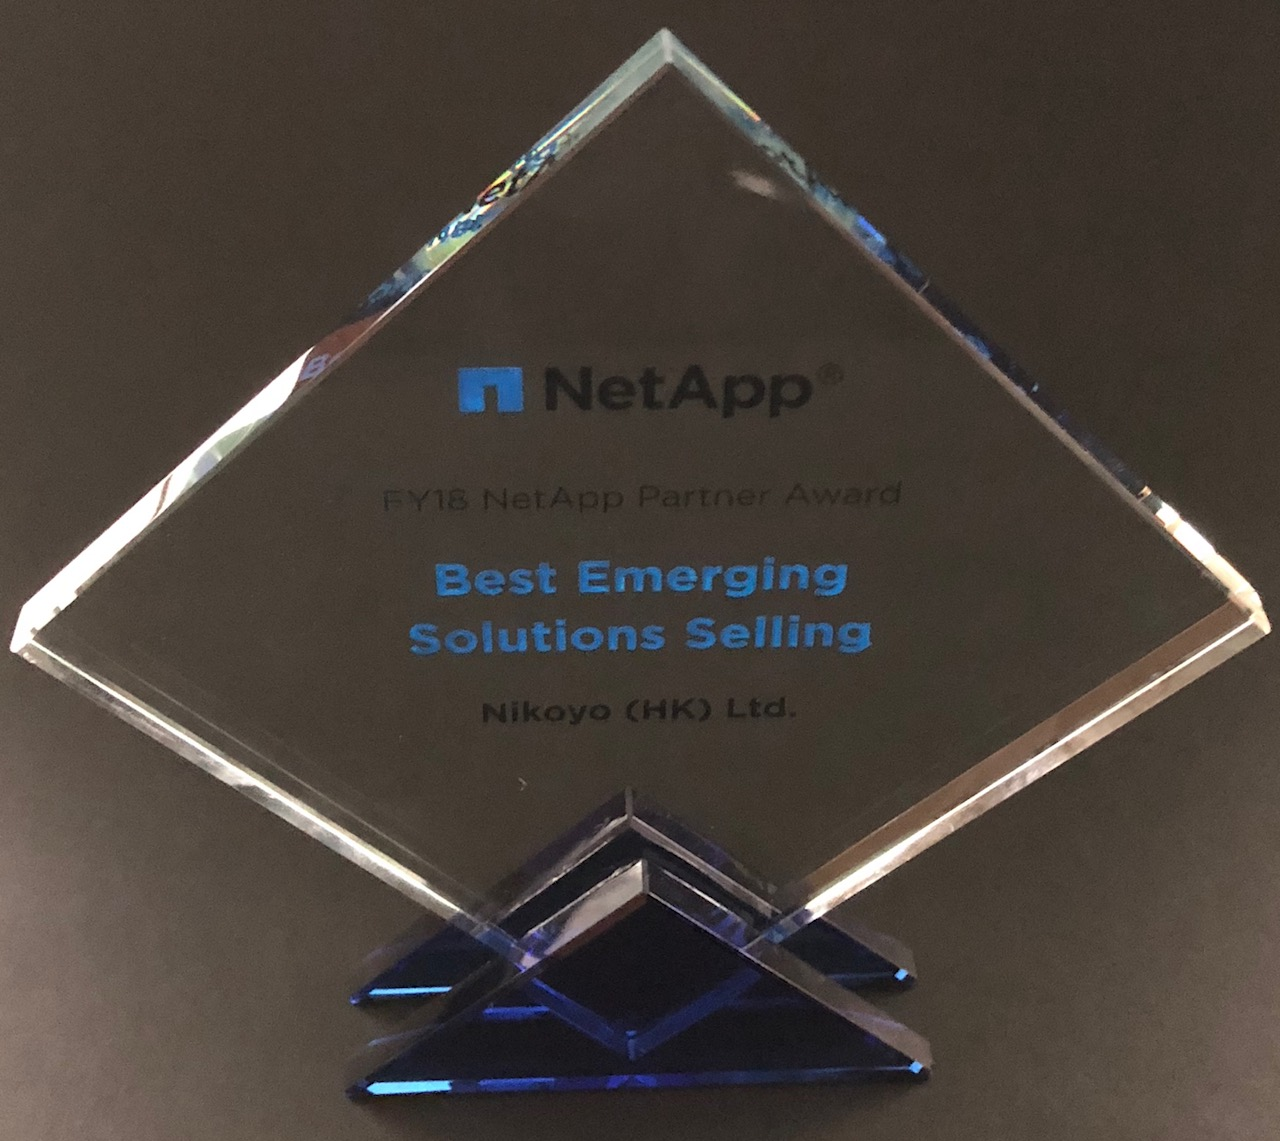 NetApp FY18 Best Emerging Solutions Selling